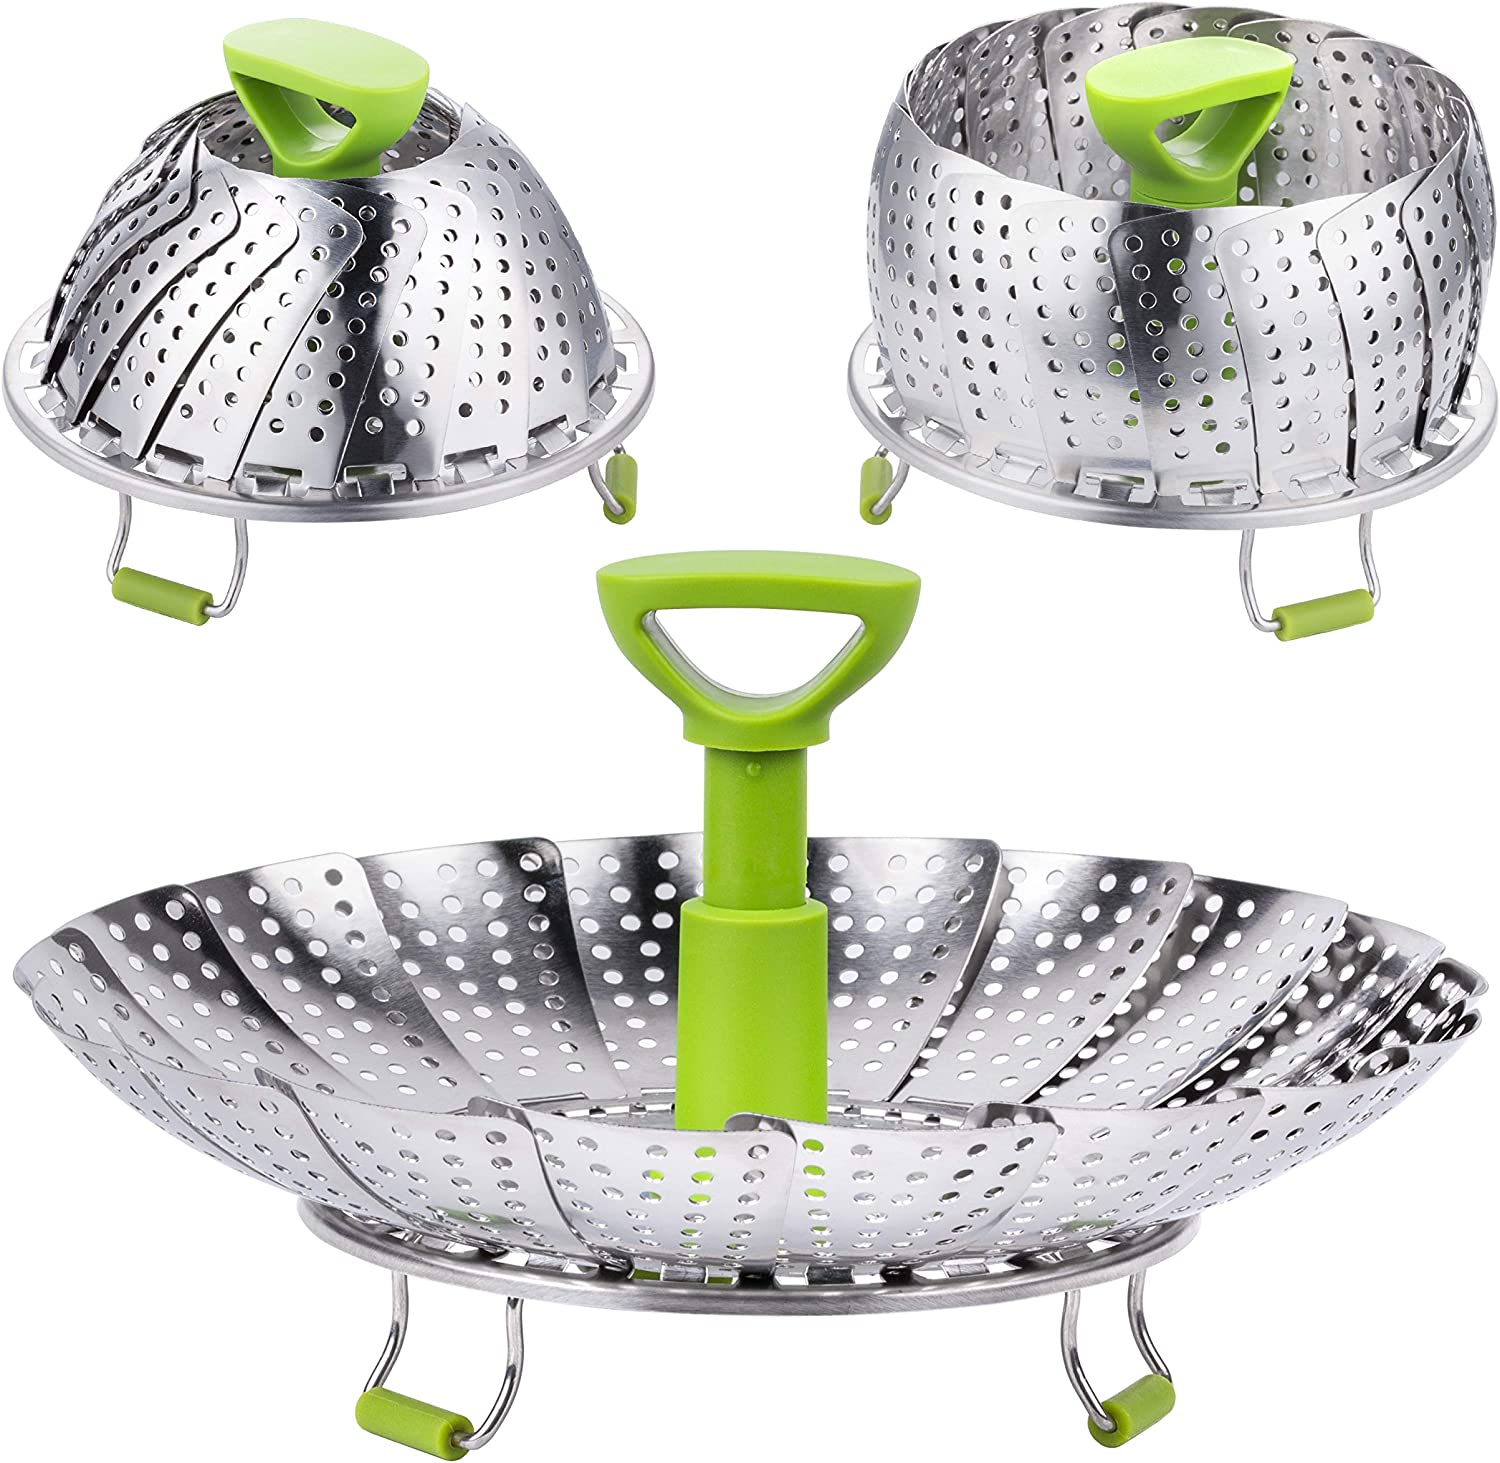 Steamer Basket, Kmeivol Vegetable Steamer Basket, Stainless Steel Vegetable Steamer, Steamer Pot with Extendable Handle for Steaming Food, 5-9 Inch Expandable Veggie Steamer to Fit Various Size Pot